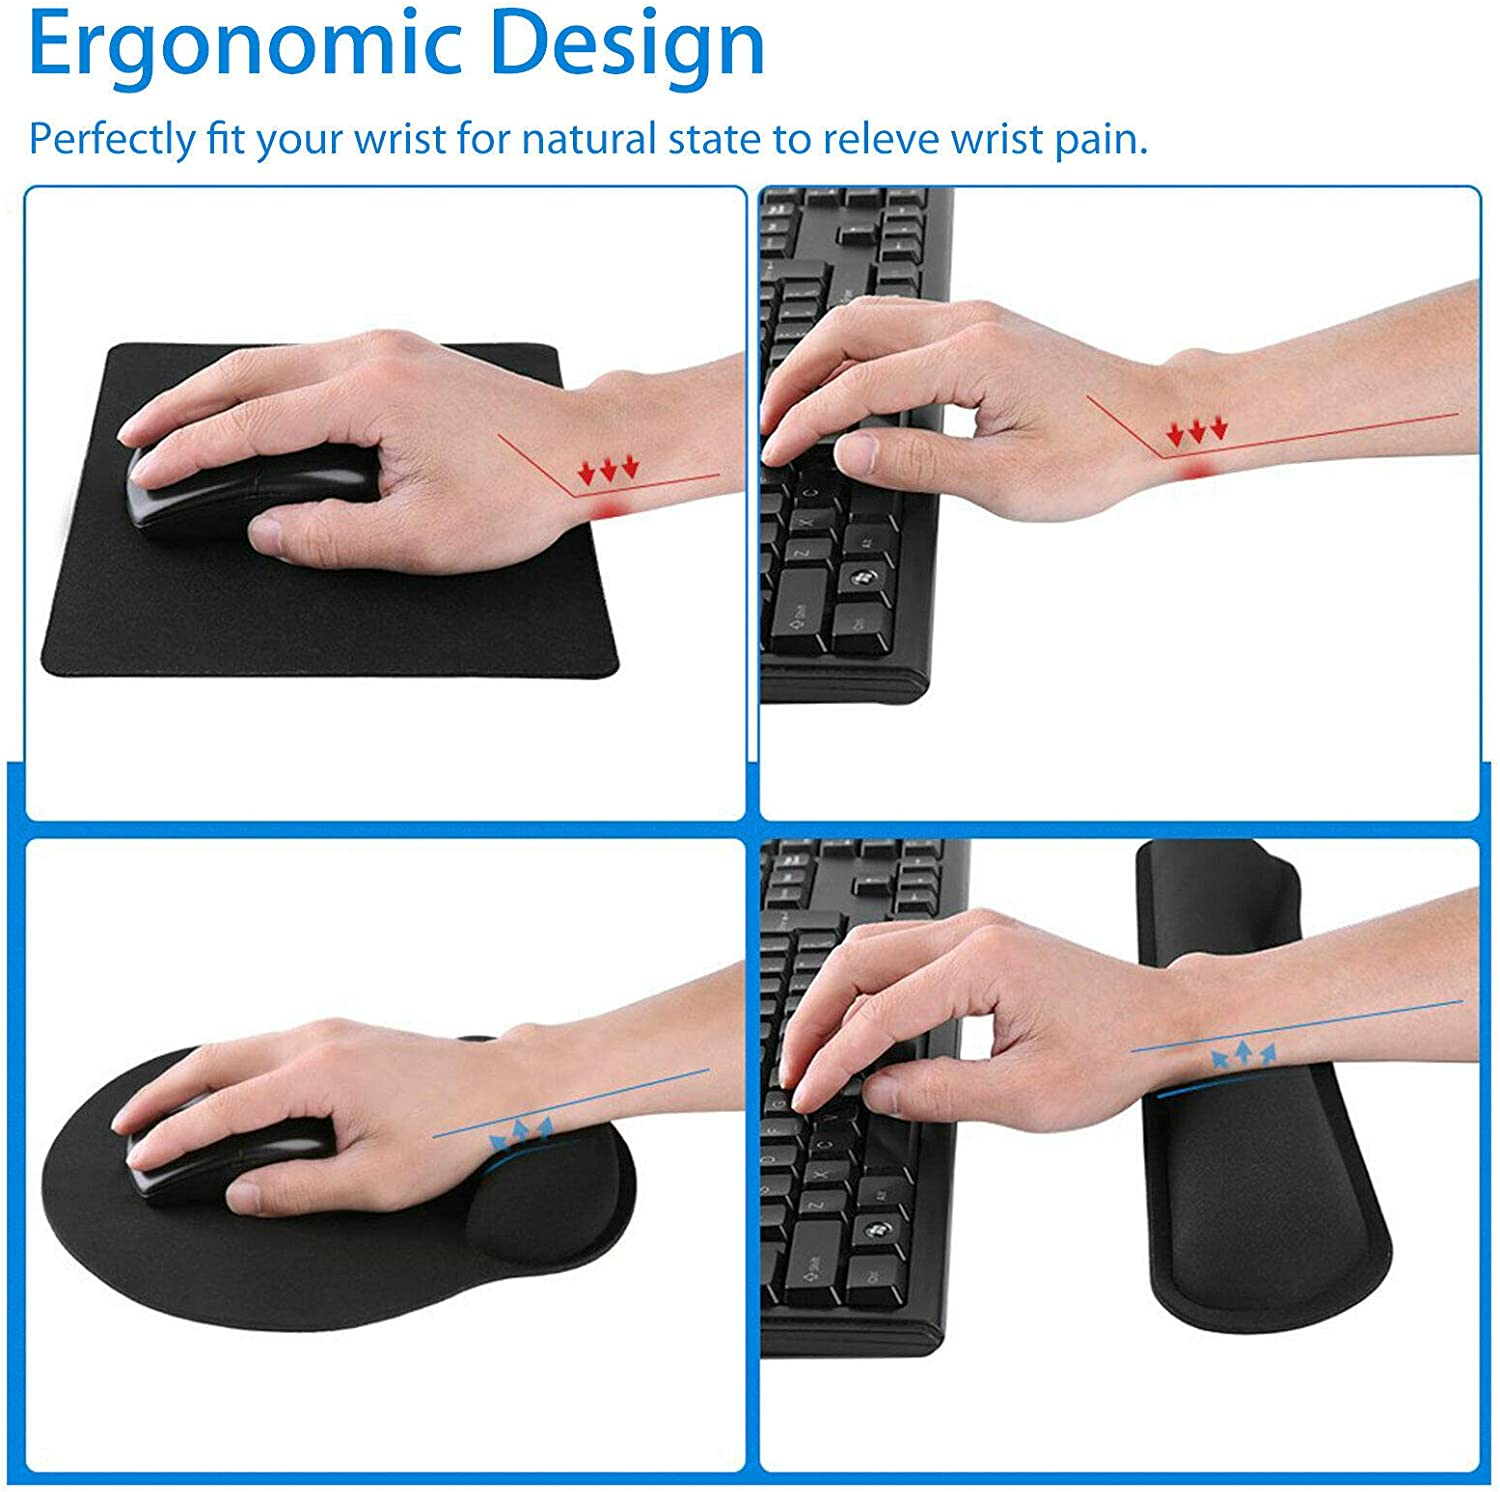 Made of Memory Foam and Gel Laptop Computer Mac Durable Comfortable /& Lightweight for Easy Typing Pain Relief eoocvt Keyboard Wrist Rest and Mouse Wrist Rest Pad for Office